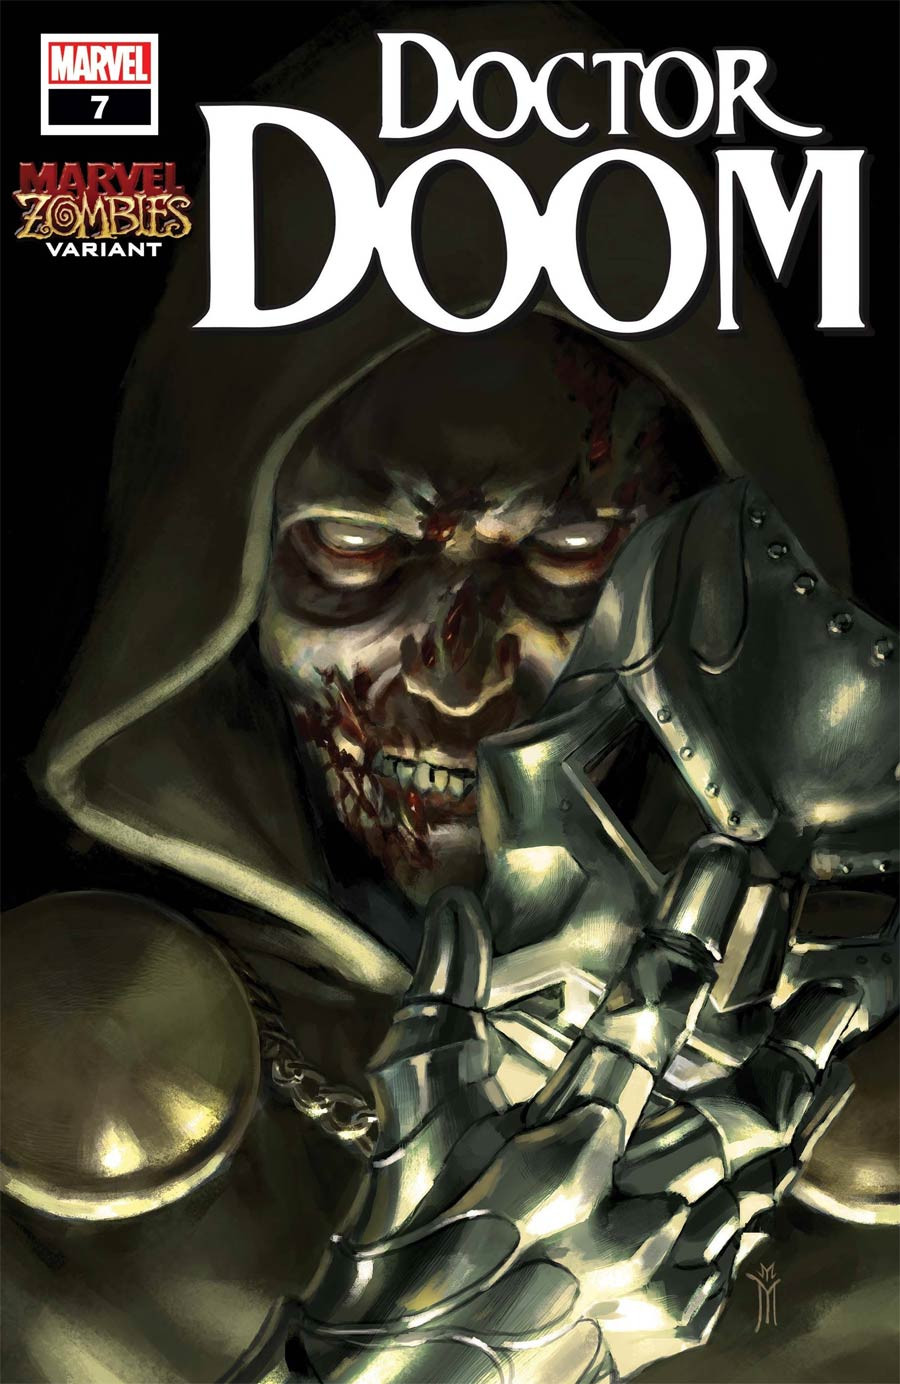 Doctor Doom Issue #7 Marvel Comics Marvel Zombies Cover